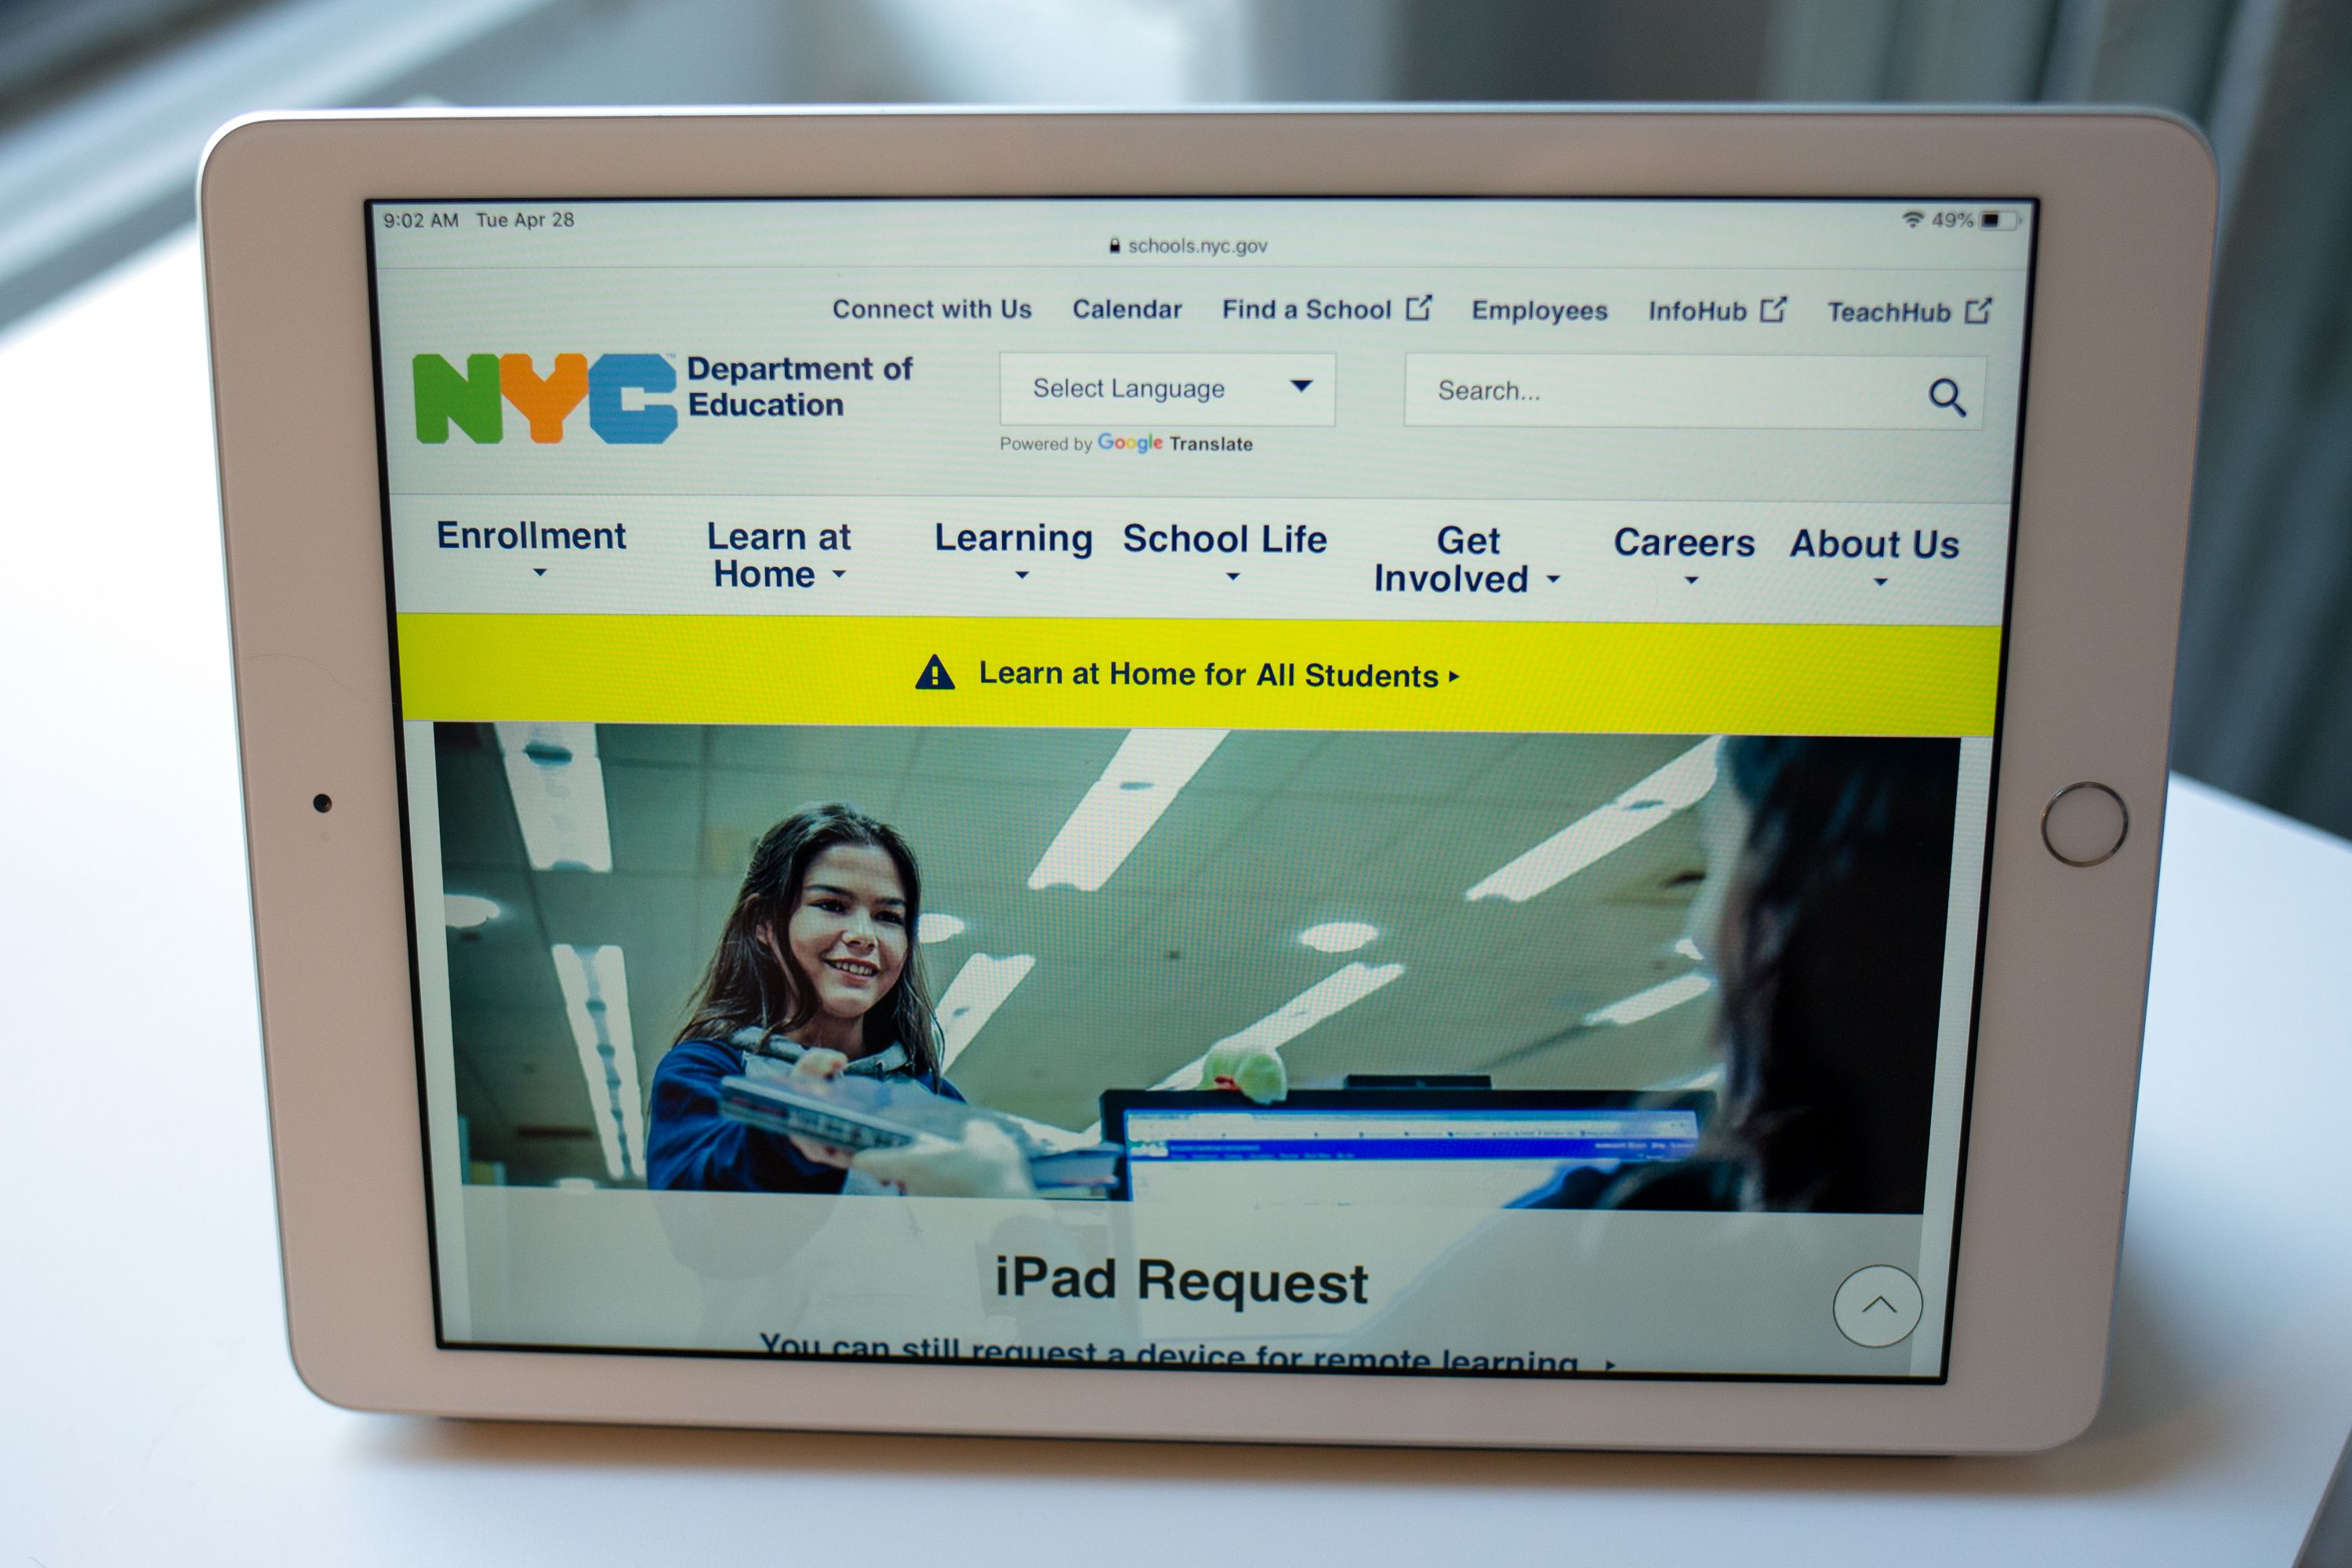 The Department of Education was providing iPads for remote learning during the coronavirus outbreak.